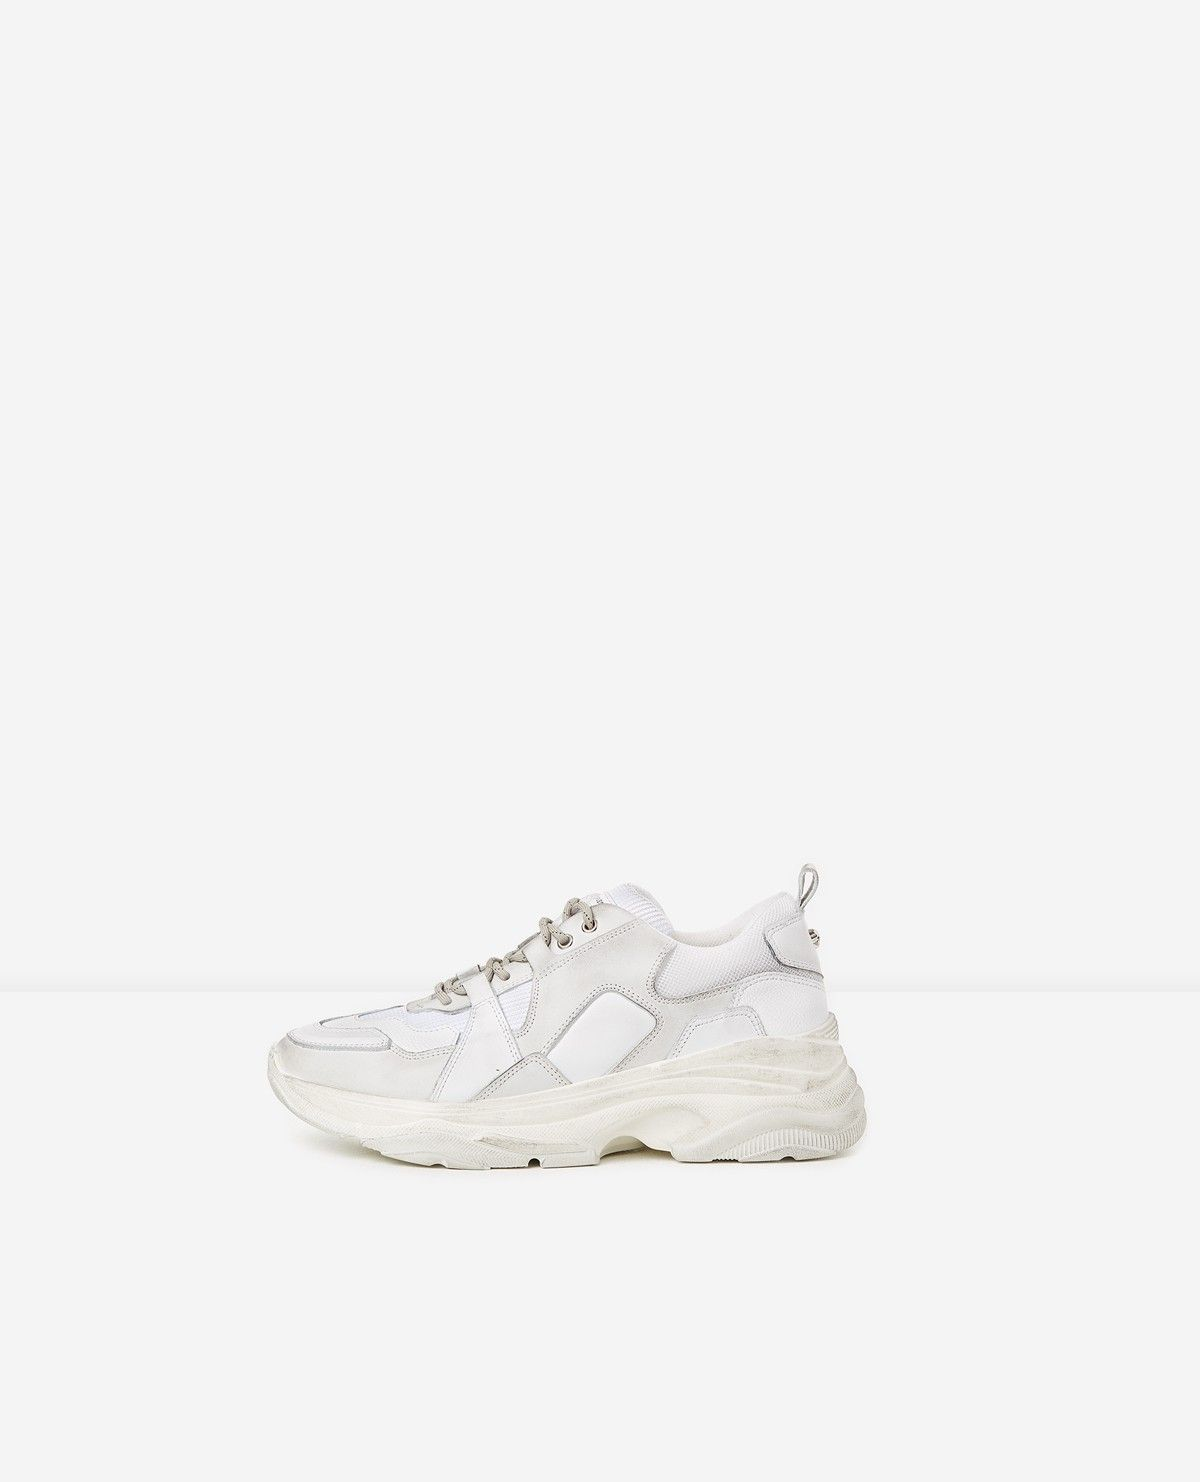 Baskets blanches large semelle | White trainers, Women shoes